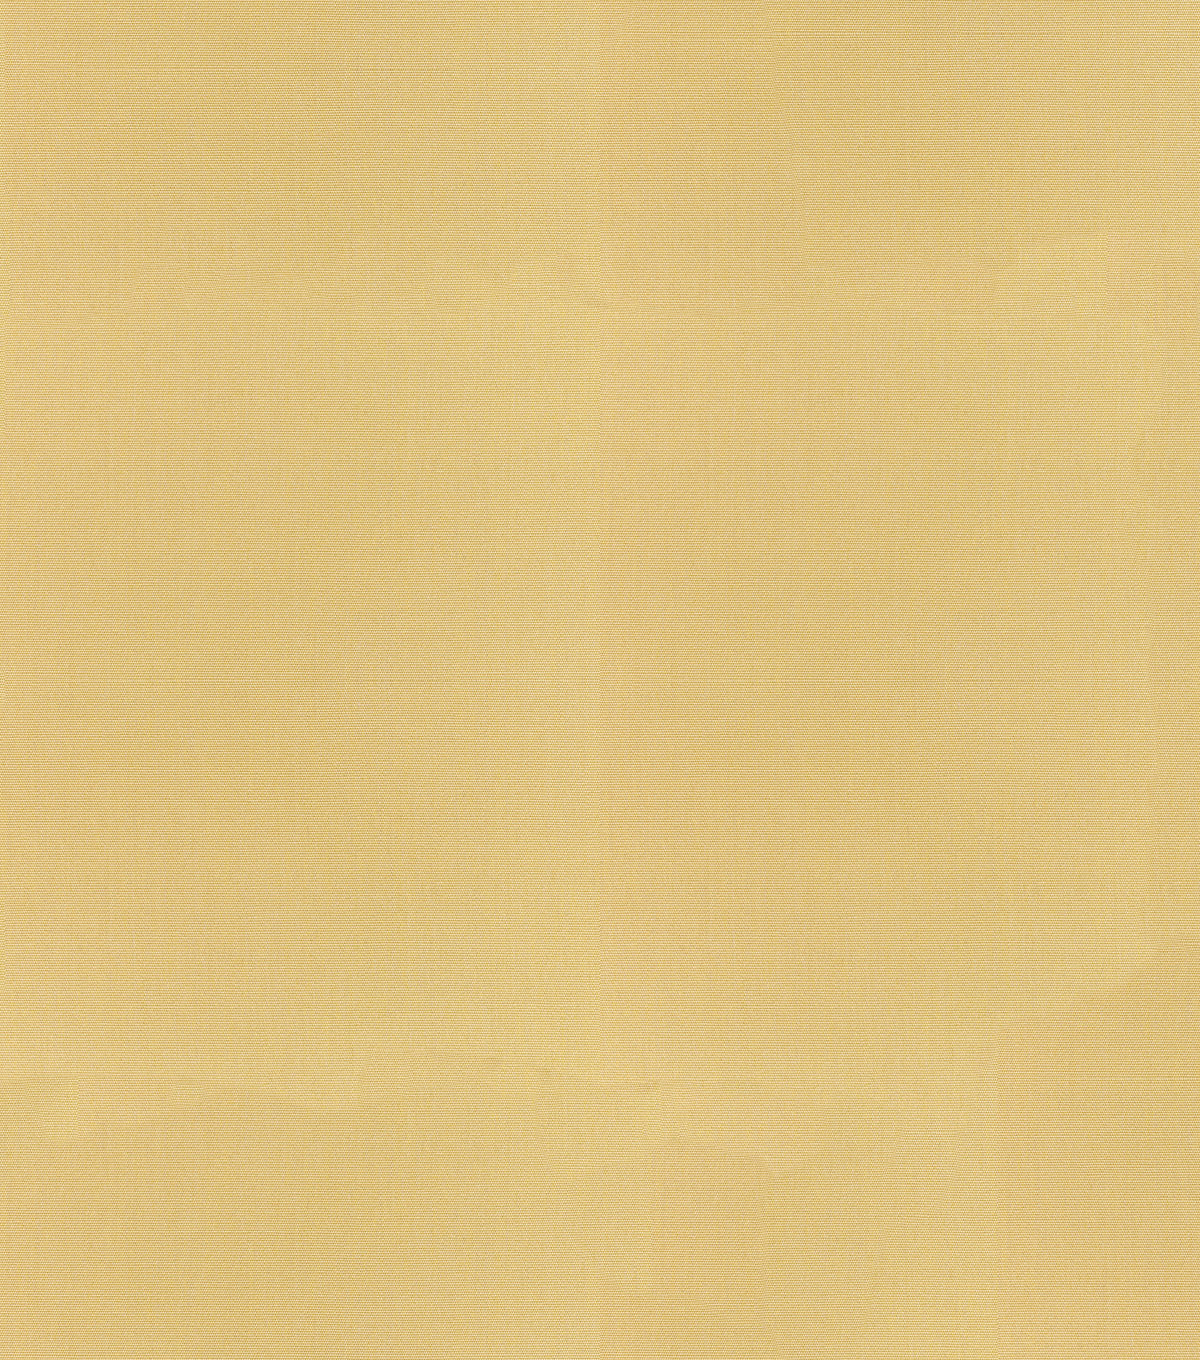 Sunbrella Outdoor Solid Canvas Fabric 54\u0022-Wheat